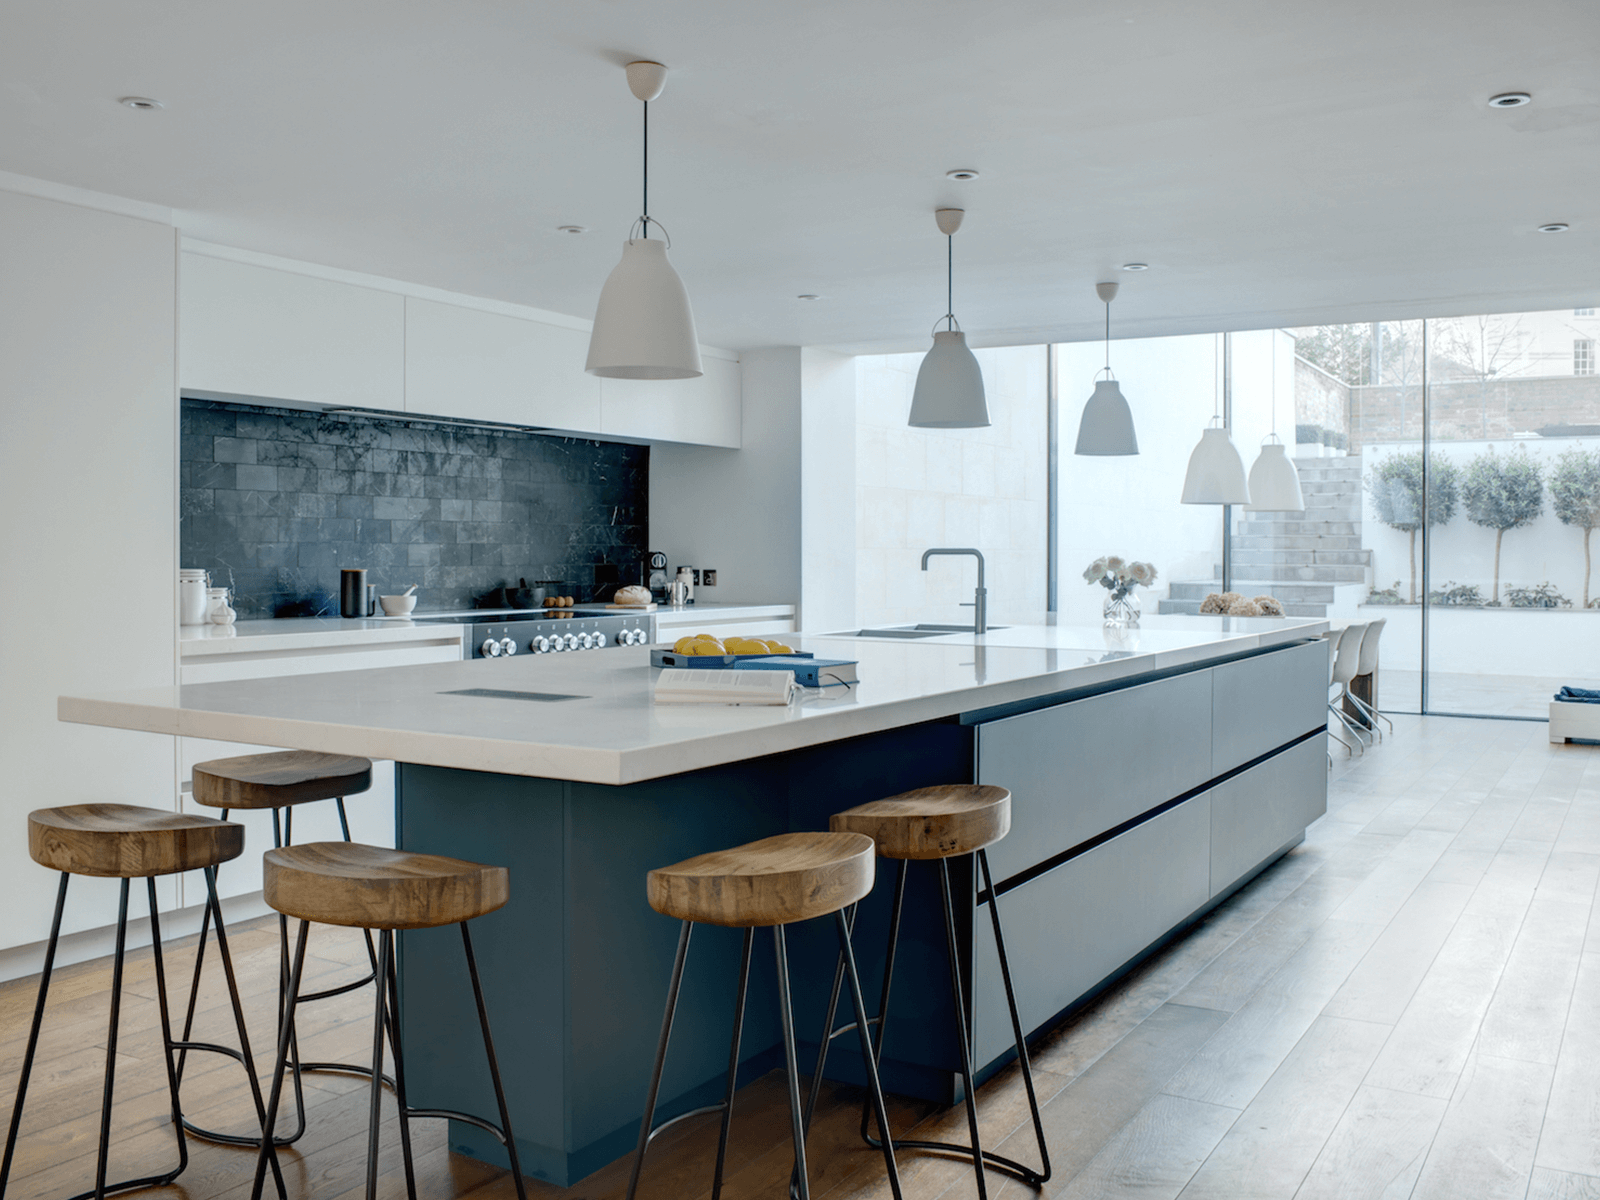 20 recommended small kitchen island ideas on a budget | kitchen